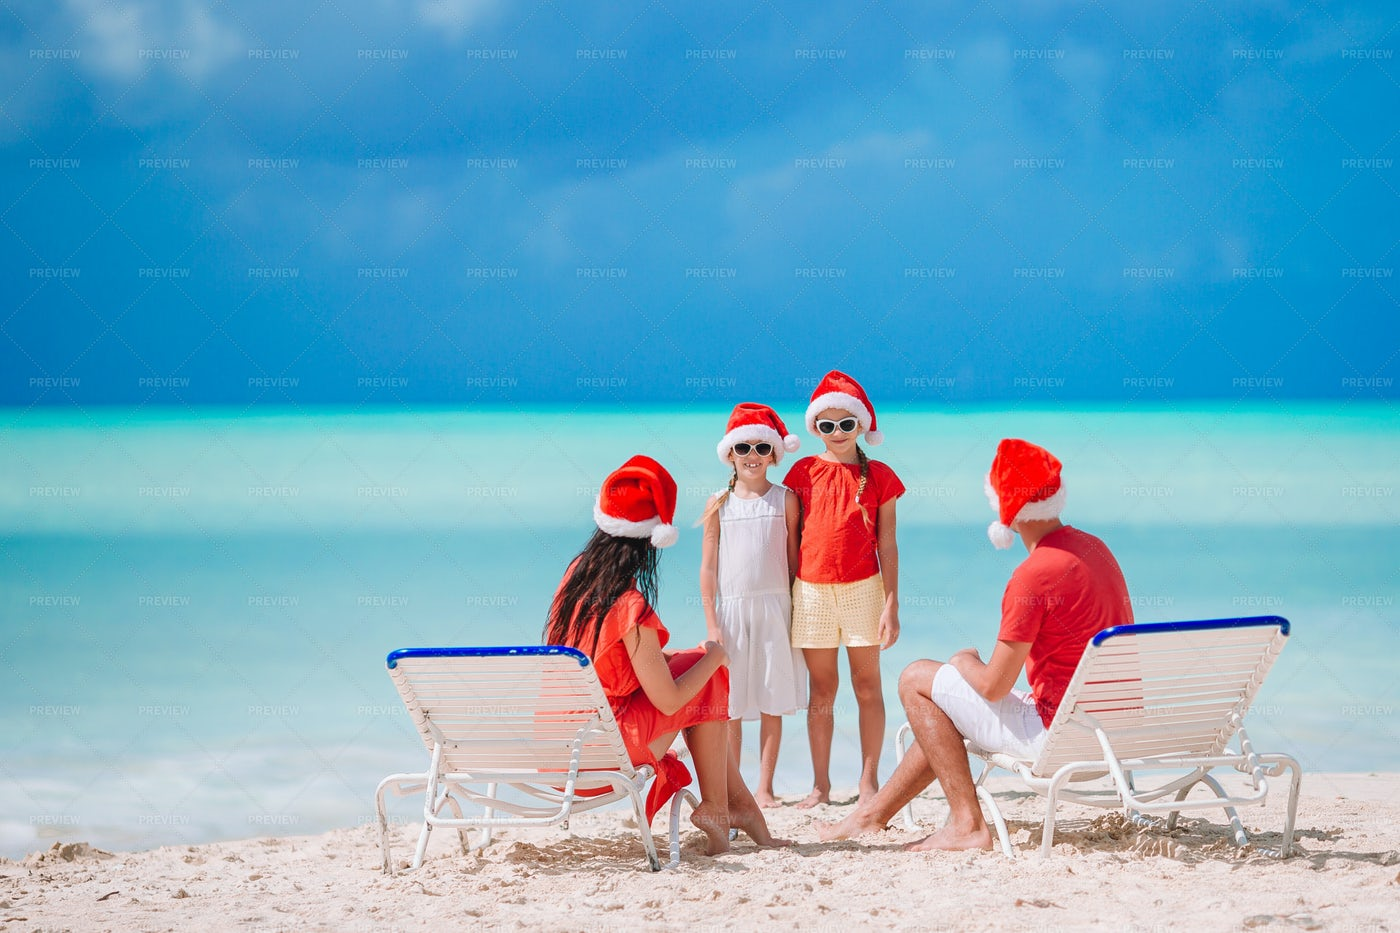 Family On Beach During Holiday: Stock Photos